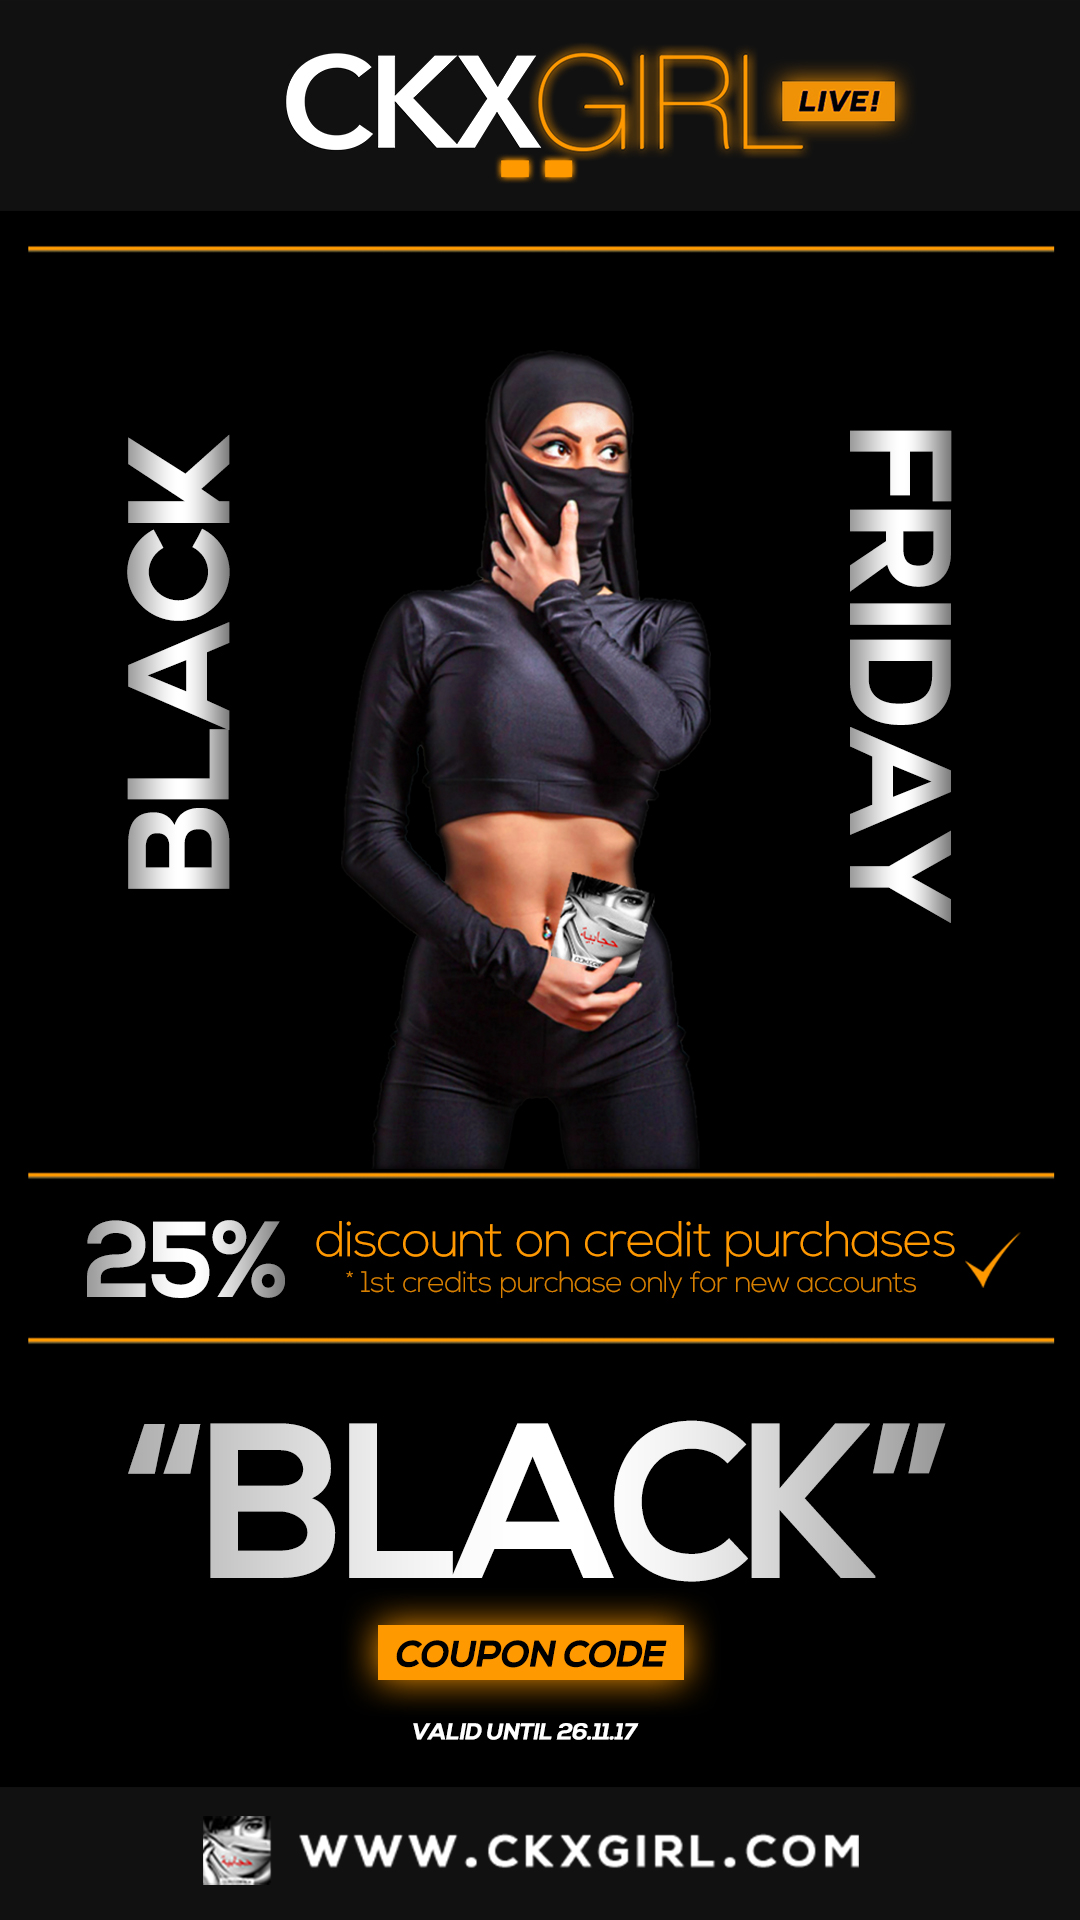 ❤️ Black Friday! ➡ 25% OFF Credit Purchases ✔︎